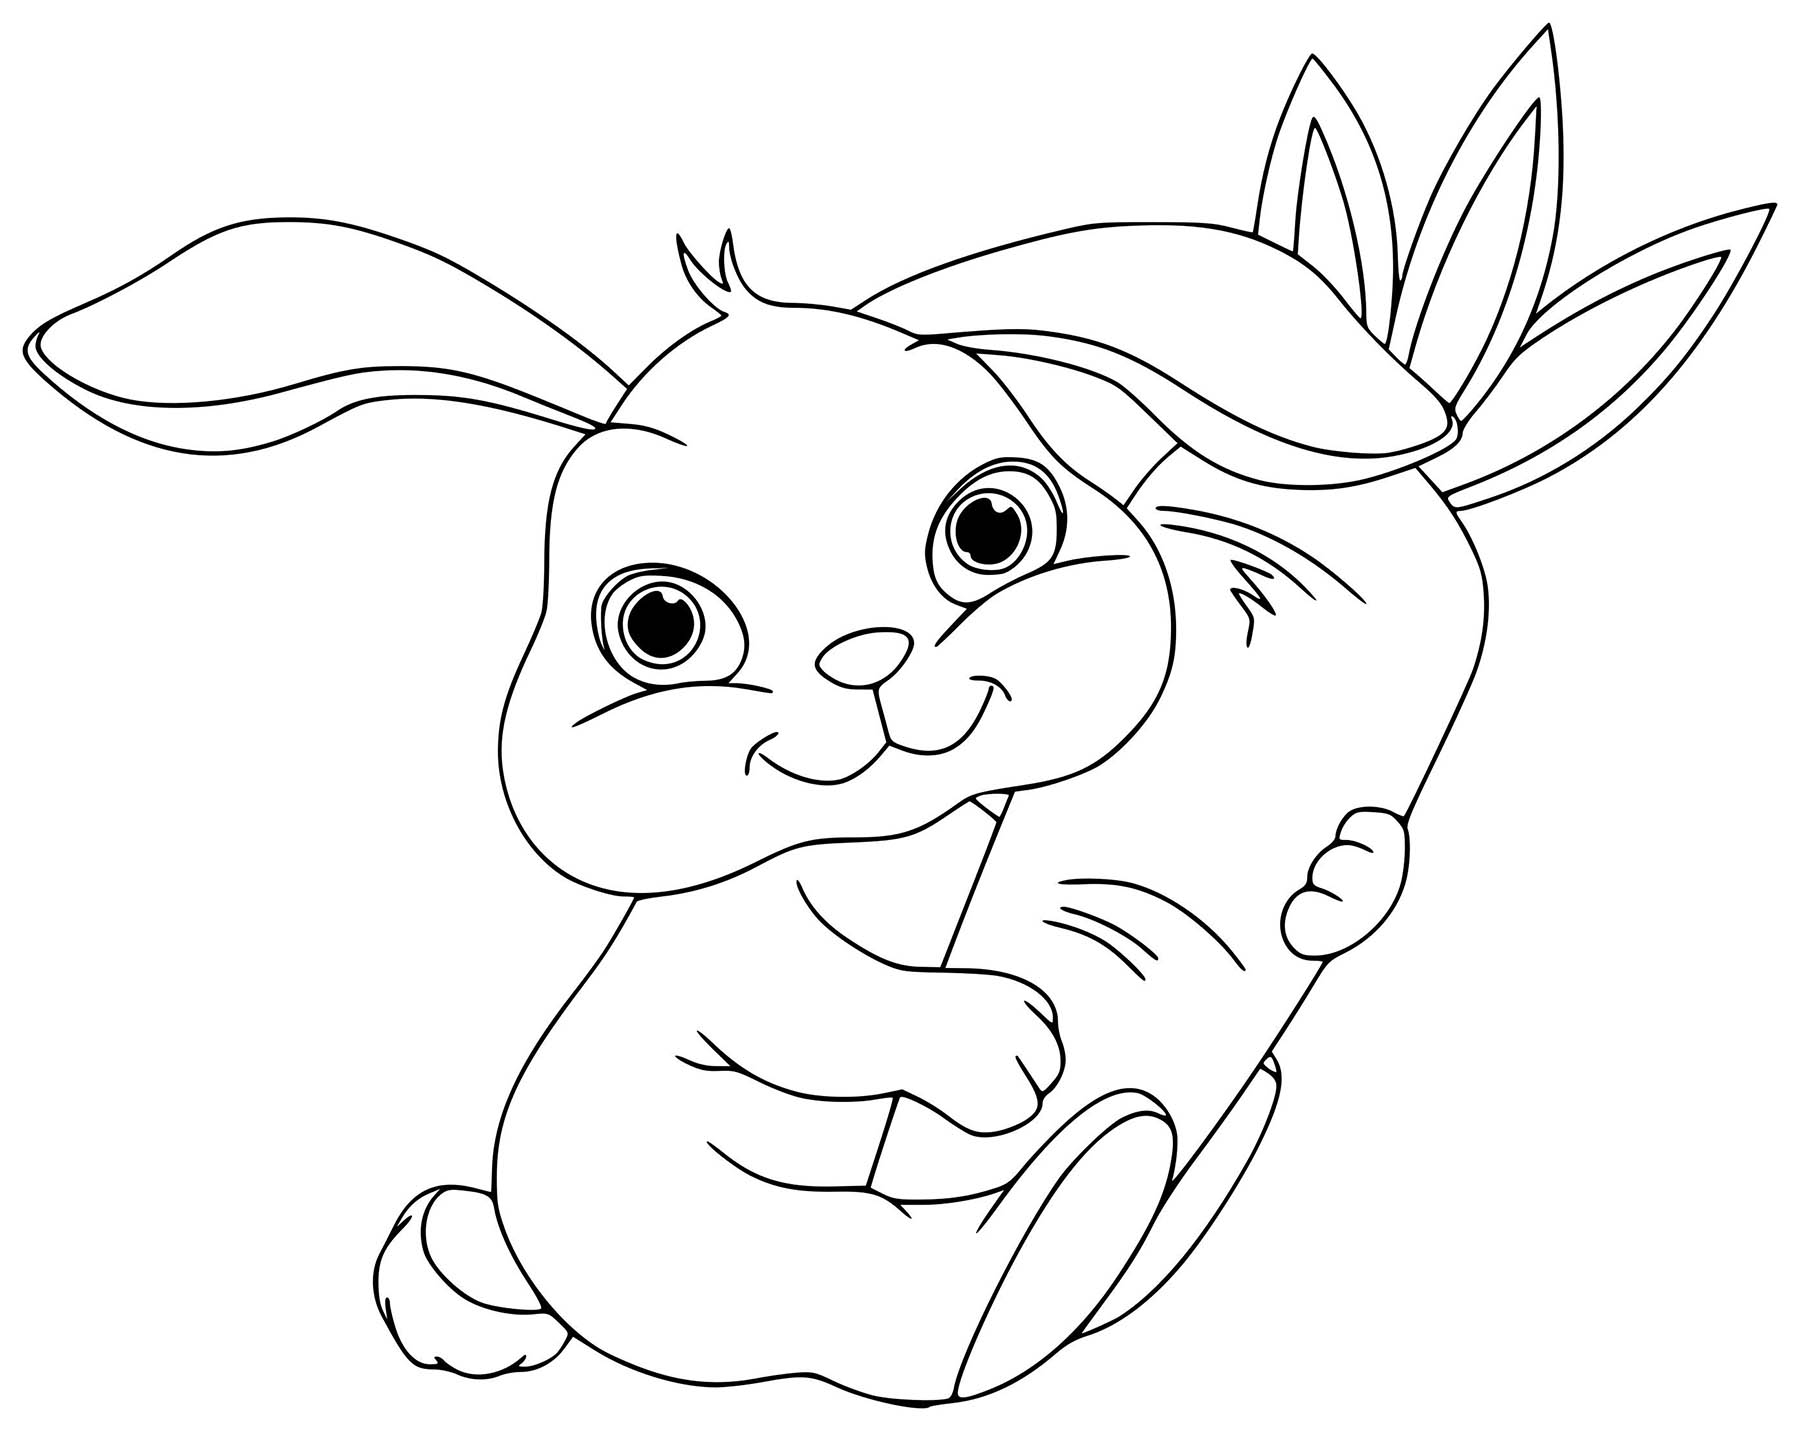 rabbit coloring pictures rabbit free to color for kids rabbit kids coloring pages pictures coloring rabbit